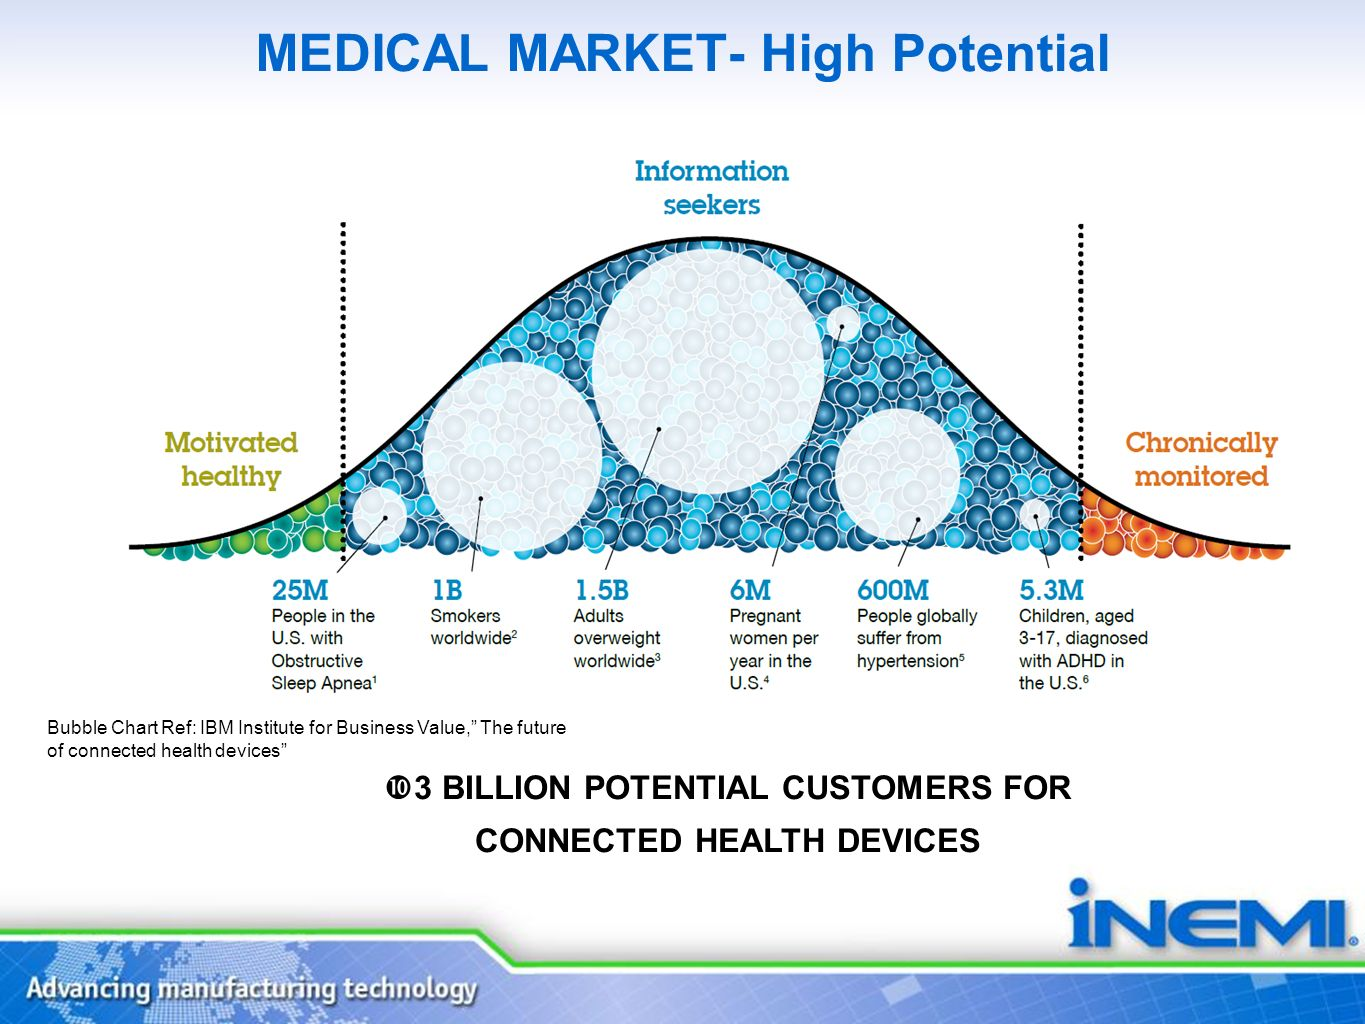 MEDICAL MARKET- High Potential Bubble Chart Ref: IBM Institute for Business Value, The future of connected health devices 3 BILLION POTENTIAL CUSTOMER